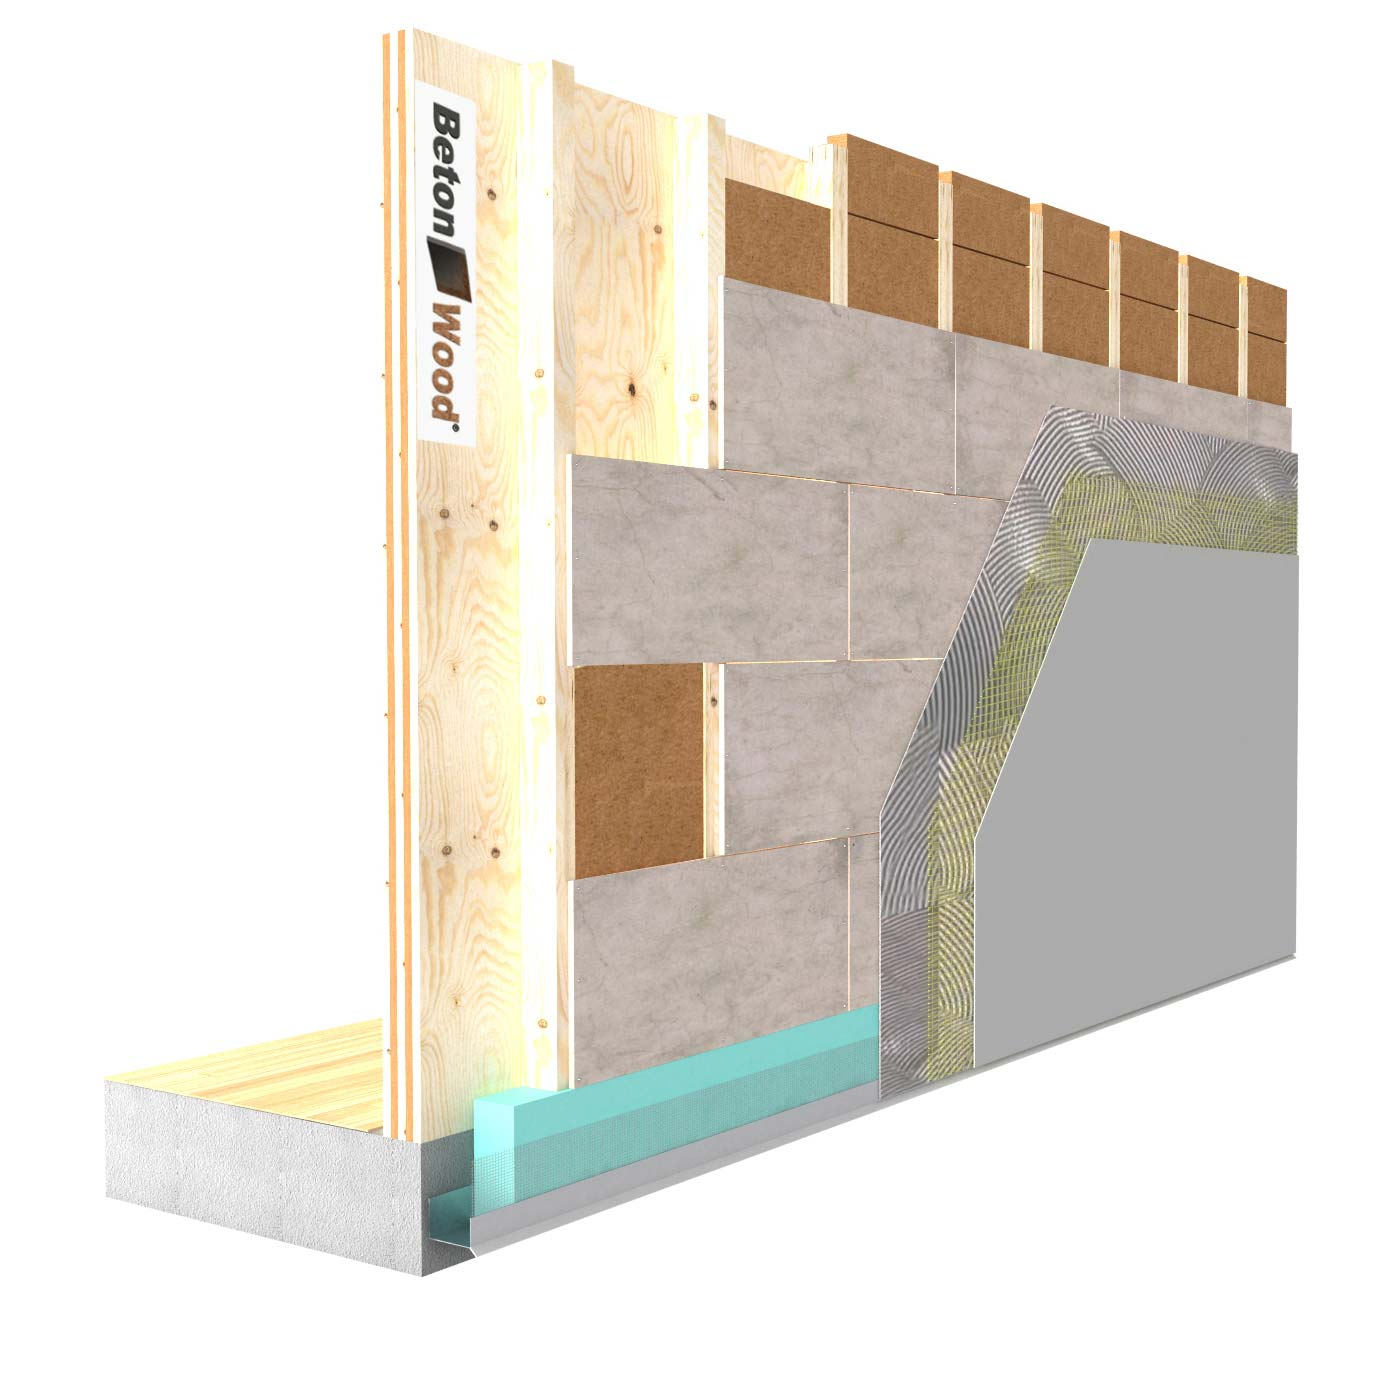 External insulation system with Therm SD fiber wood on wooden walls